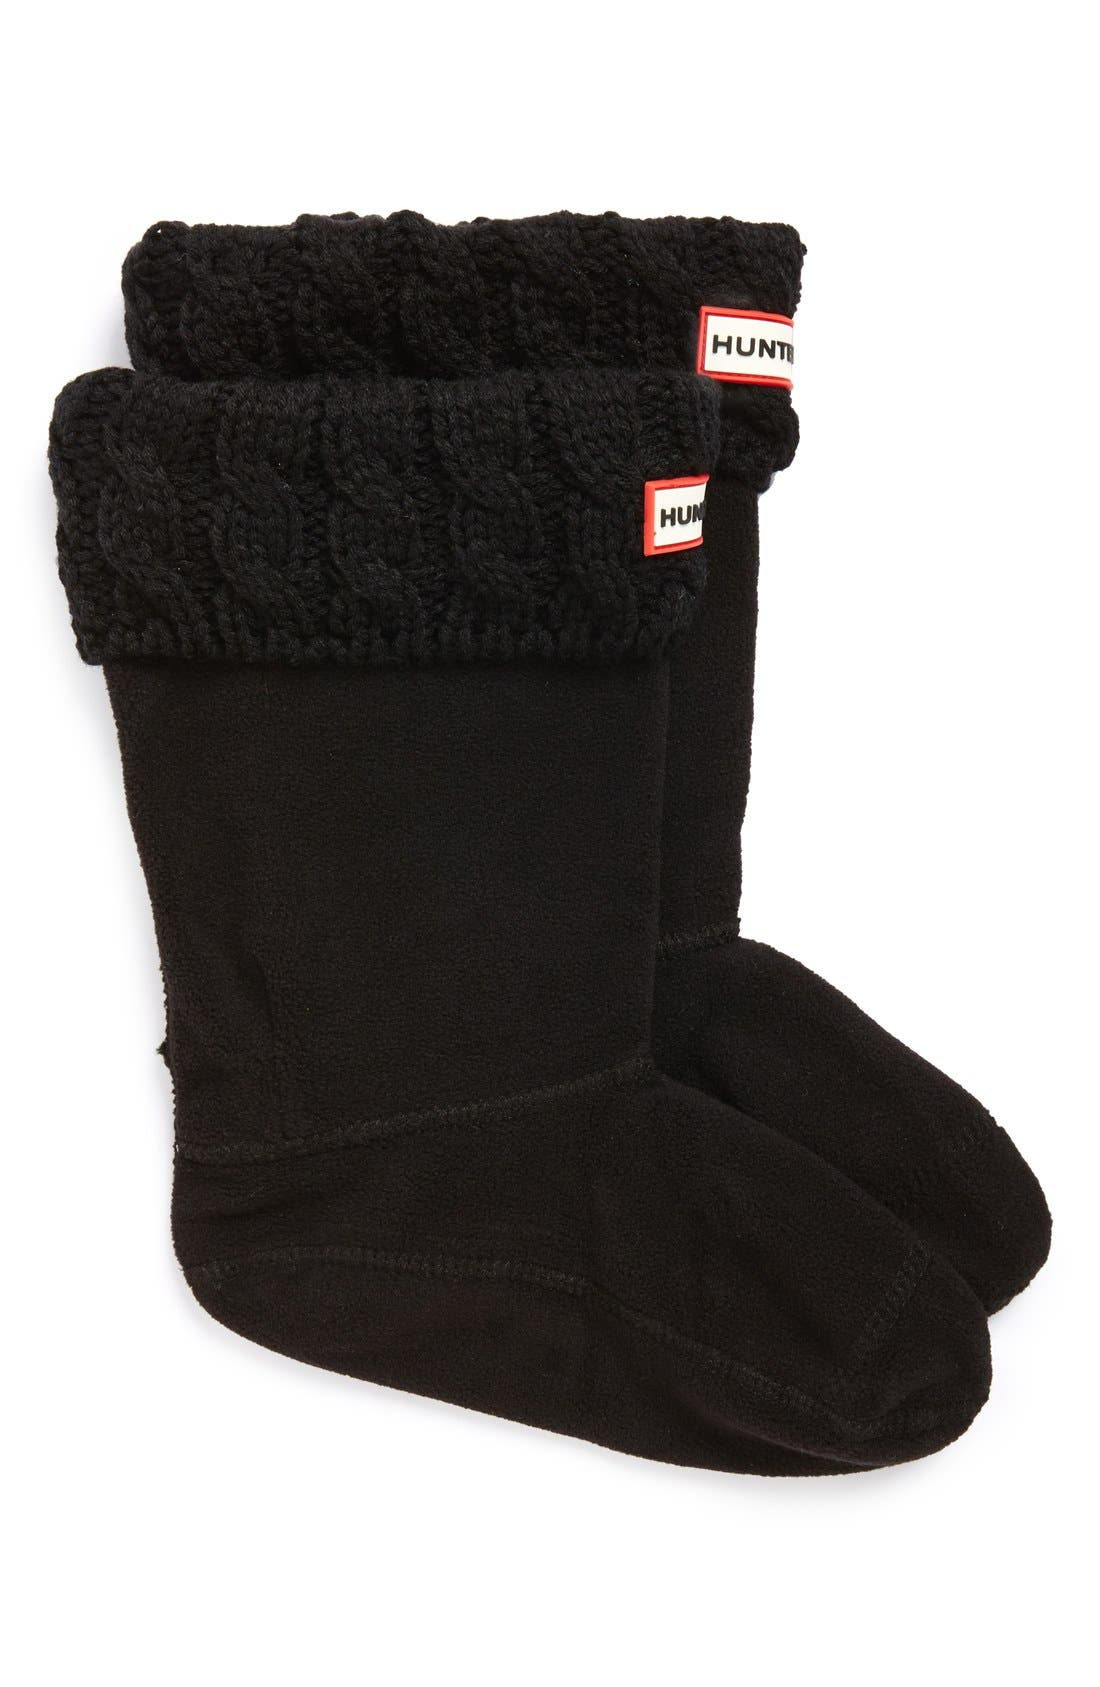 Girls Hunter Cable Knit Cuff Welly Boot Socks Size L (13)  Black